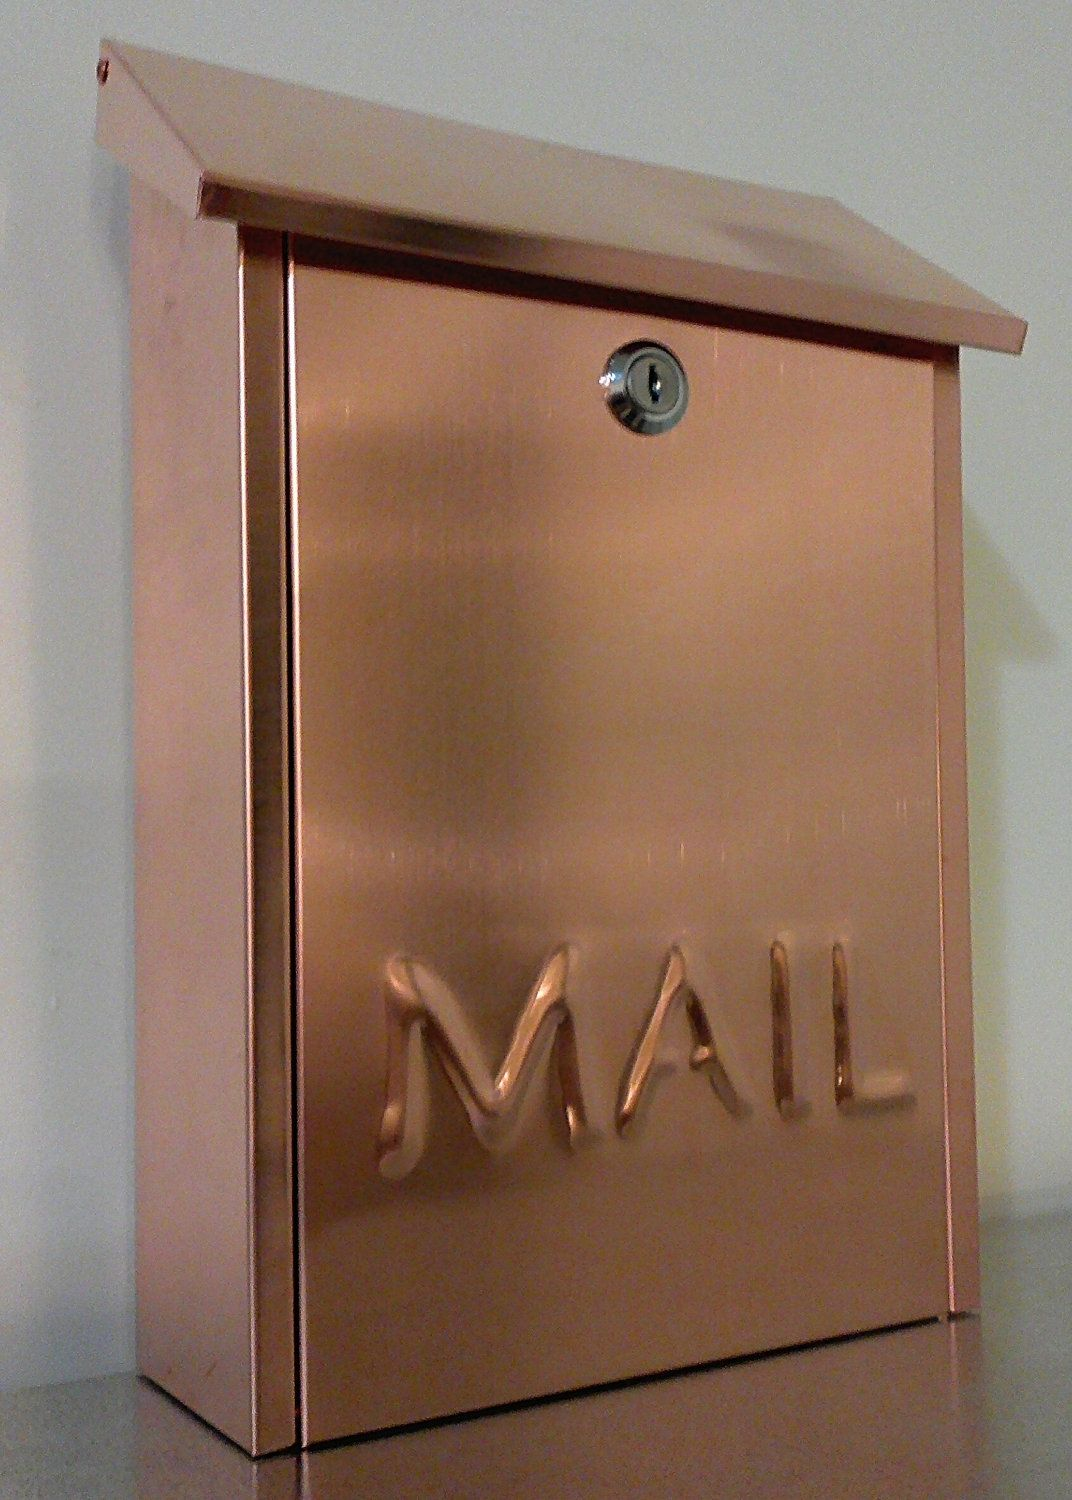 Copper Mailbox Patina Wall Mounted Copper Mailbox Via Etsy 인테리어 Pinterest